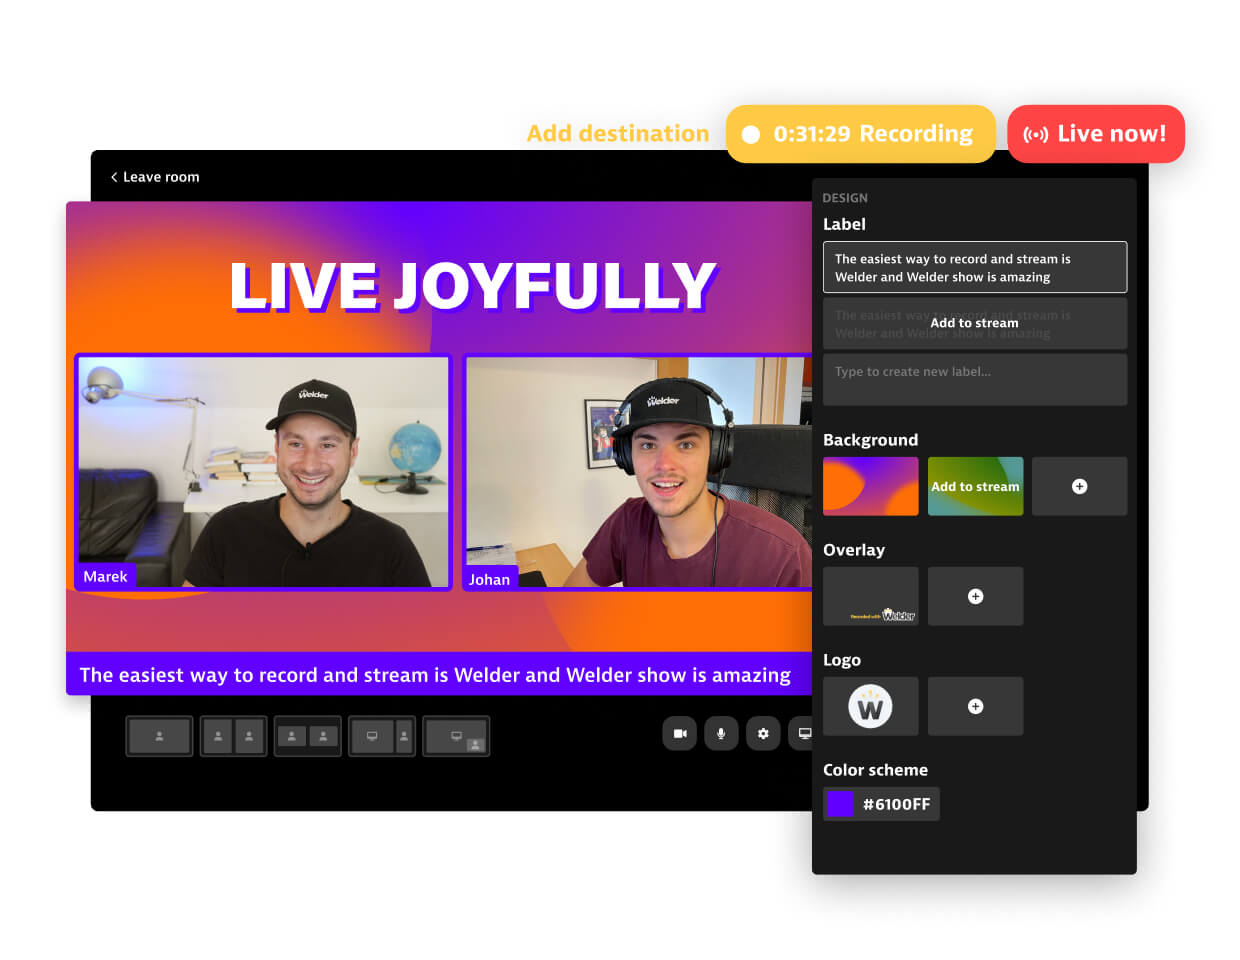 Personalize your stream